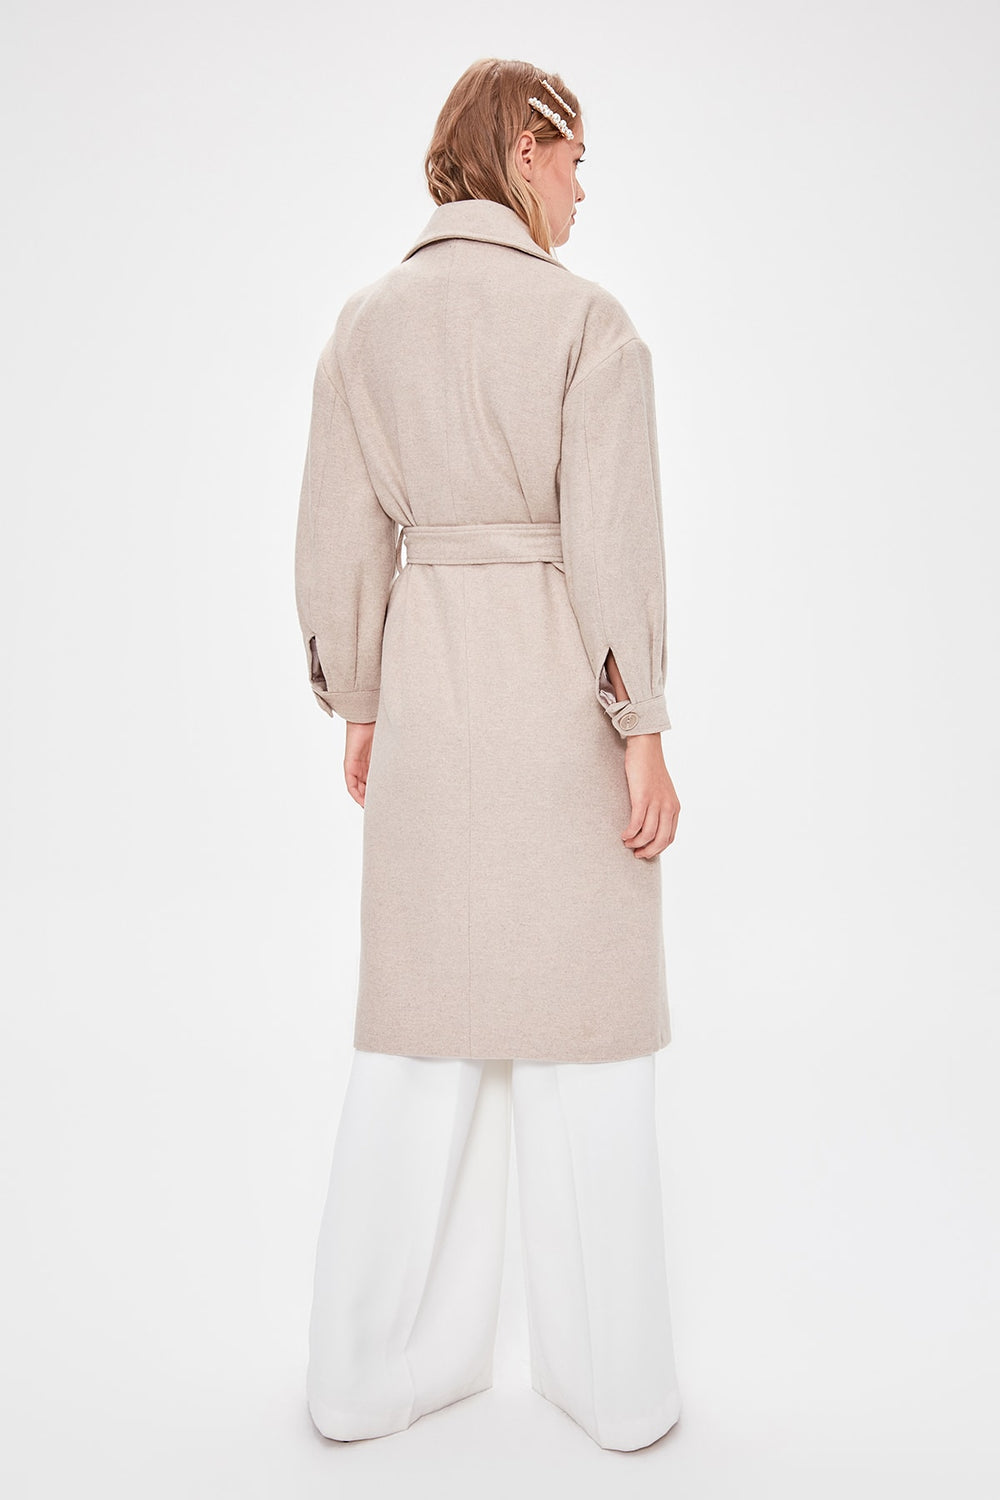 Stone Ring Buckled Belt Detailed Long Stamp Coat - Top Maxy